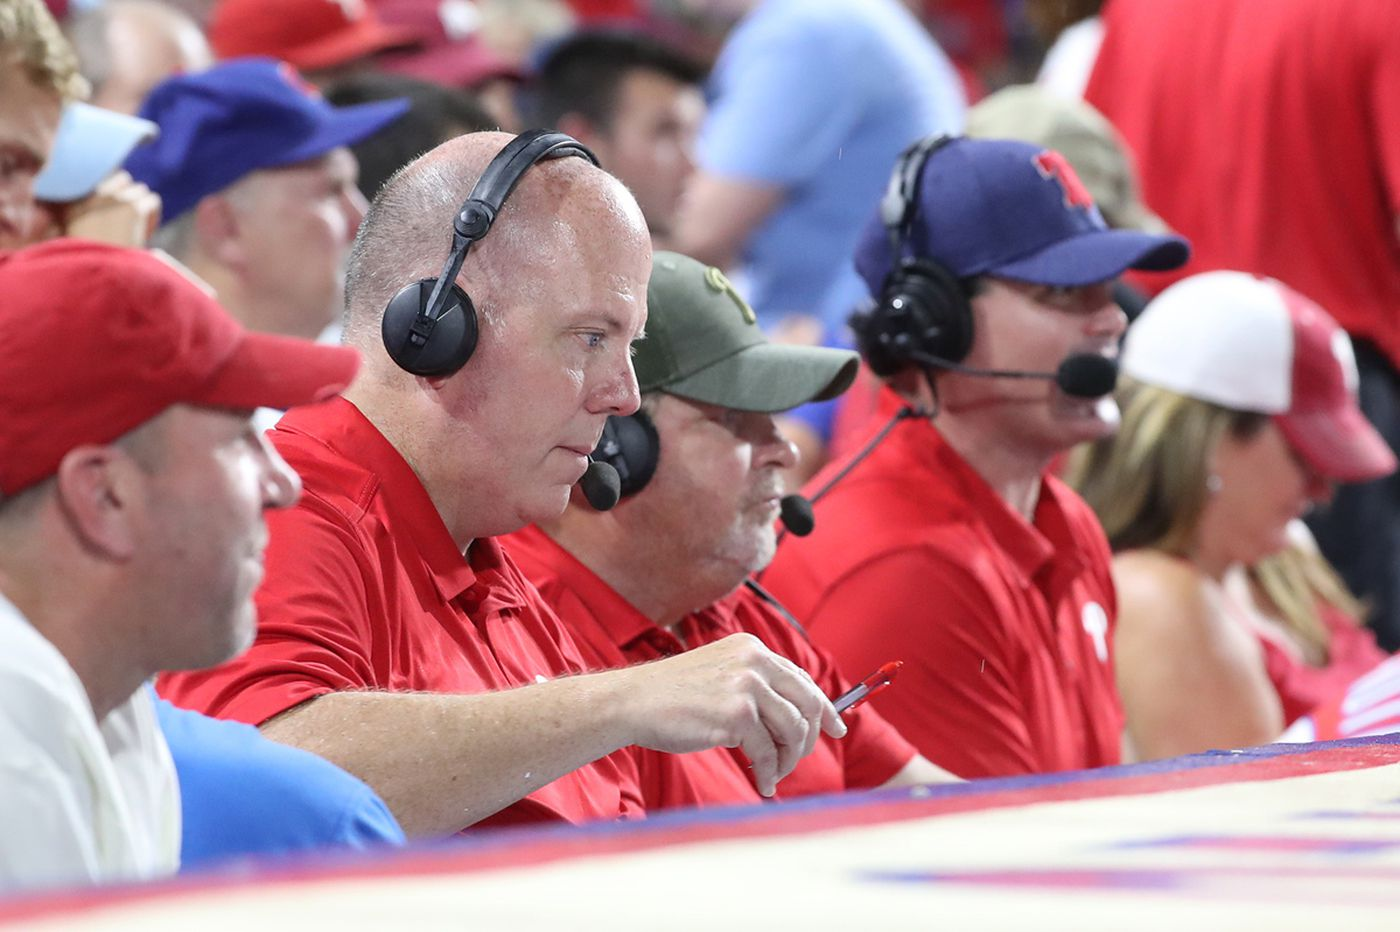 John Kruk was miserable in the stands during Phillies